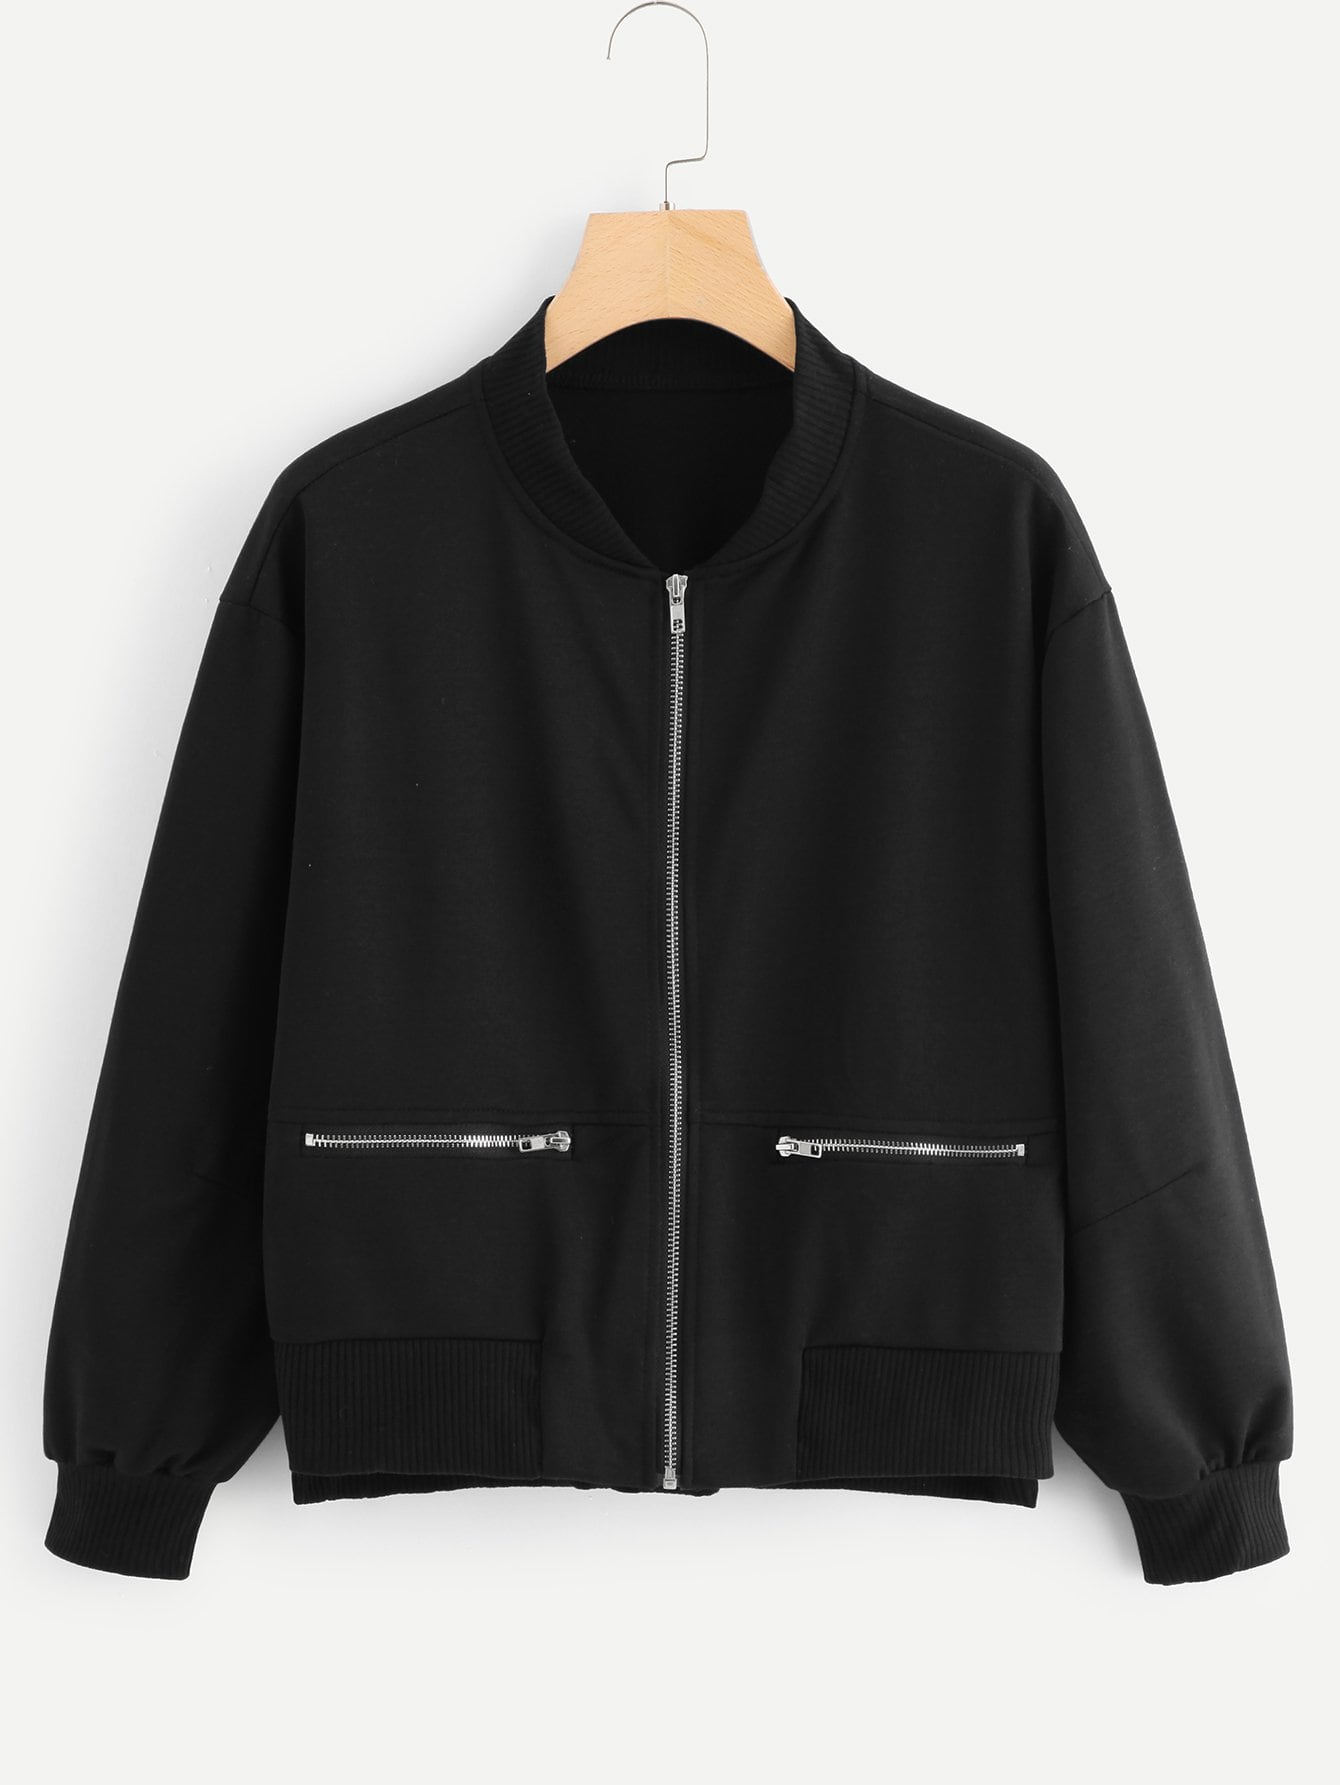 Zipper Detail Zip Up Jacket